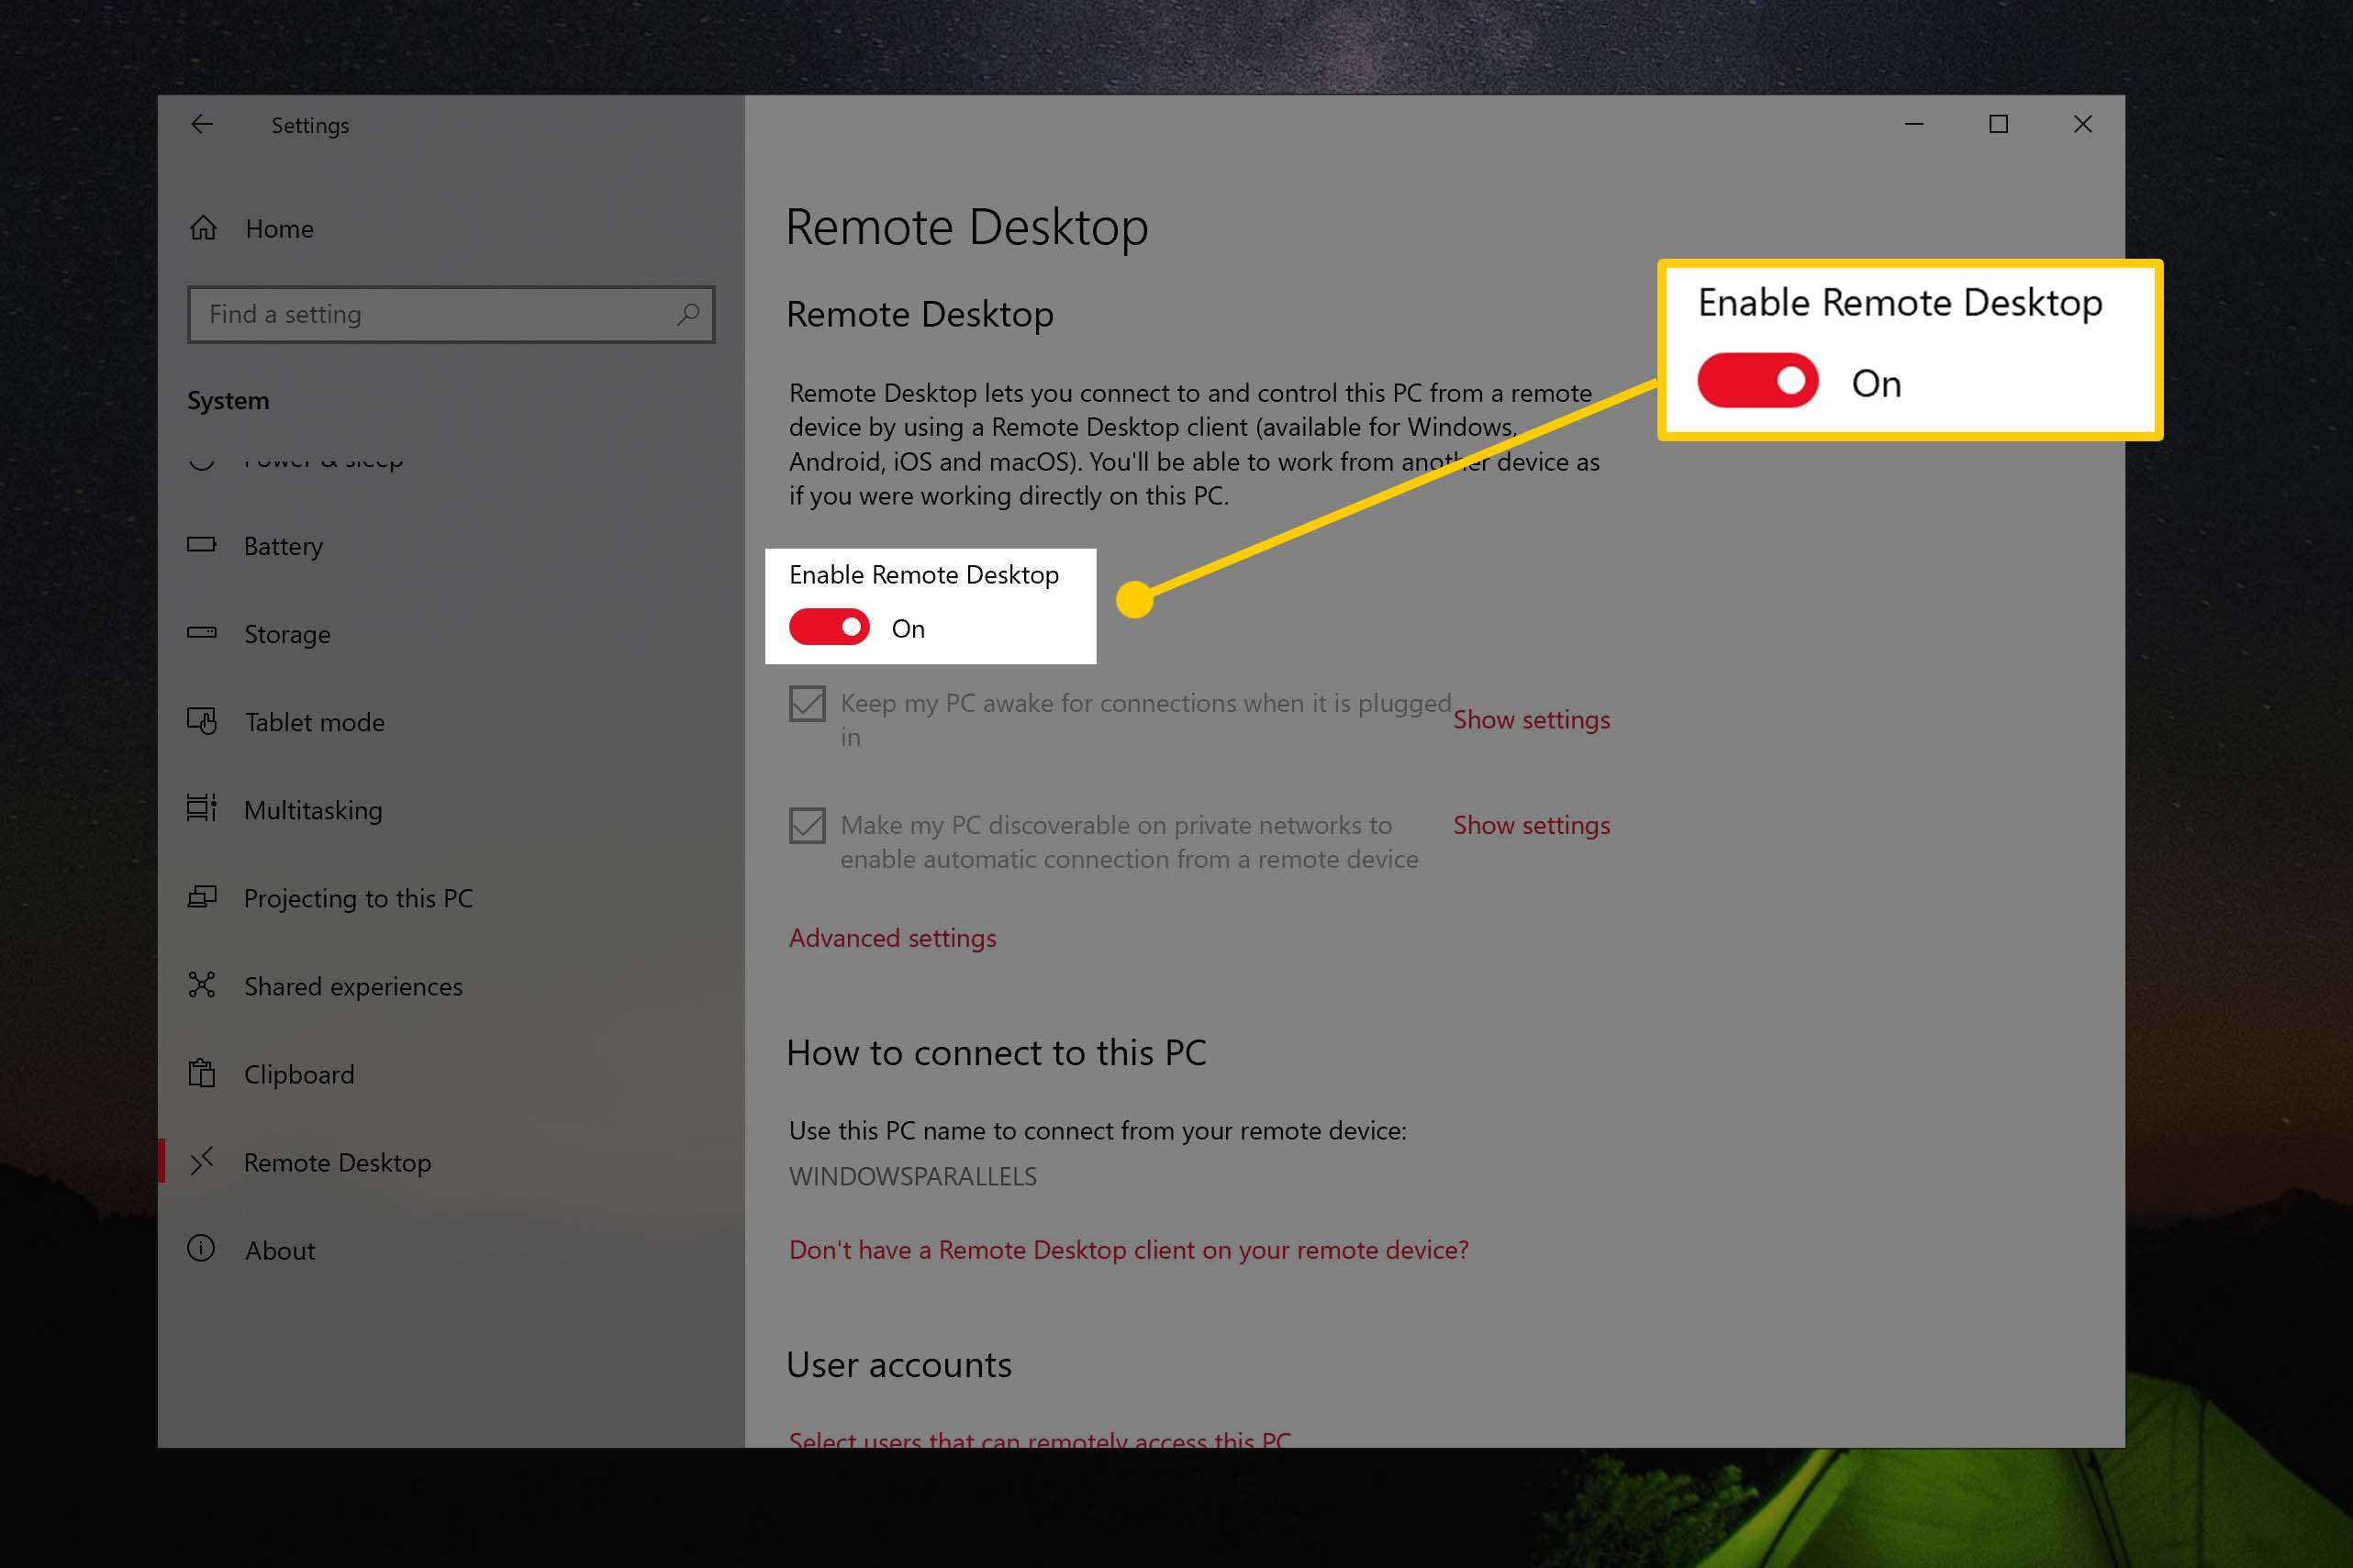 How to Use Remote Desktop on Windows 10